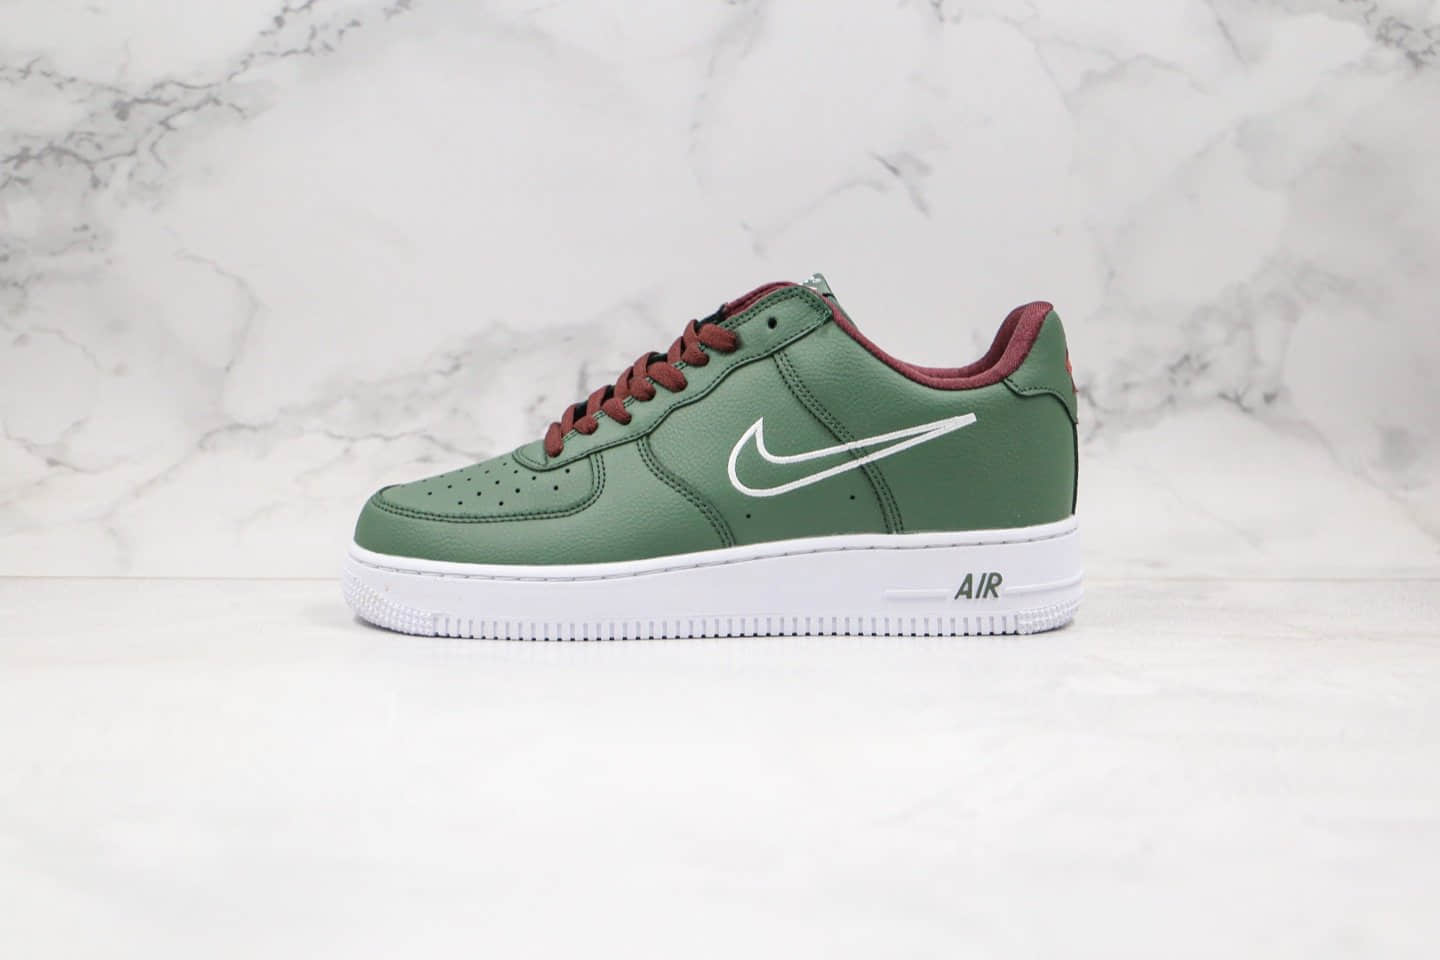 耐克Nike Air Force 1 Hong Kong纯原版本低帮空